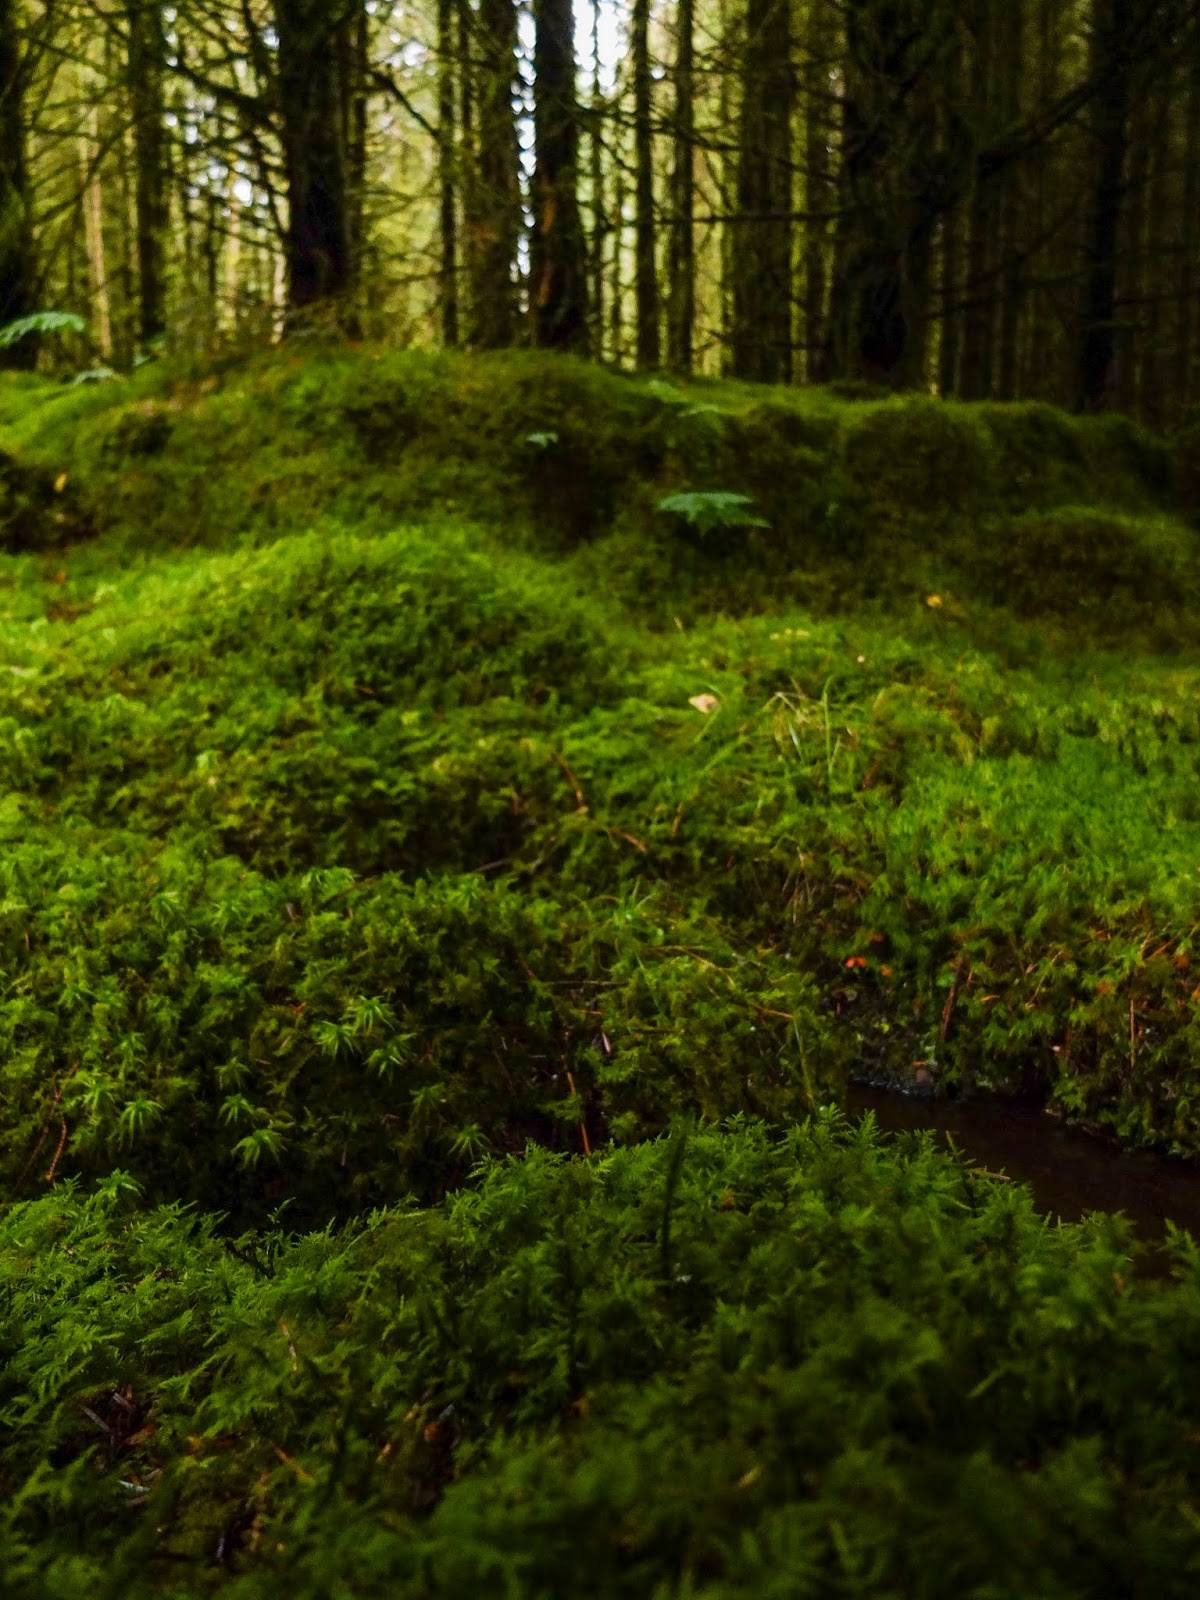 Moss covered mounds inside a forest.